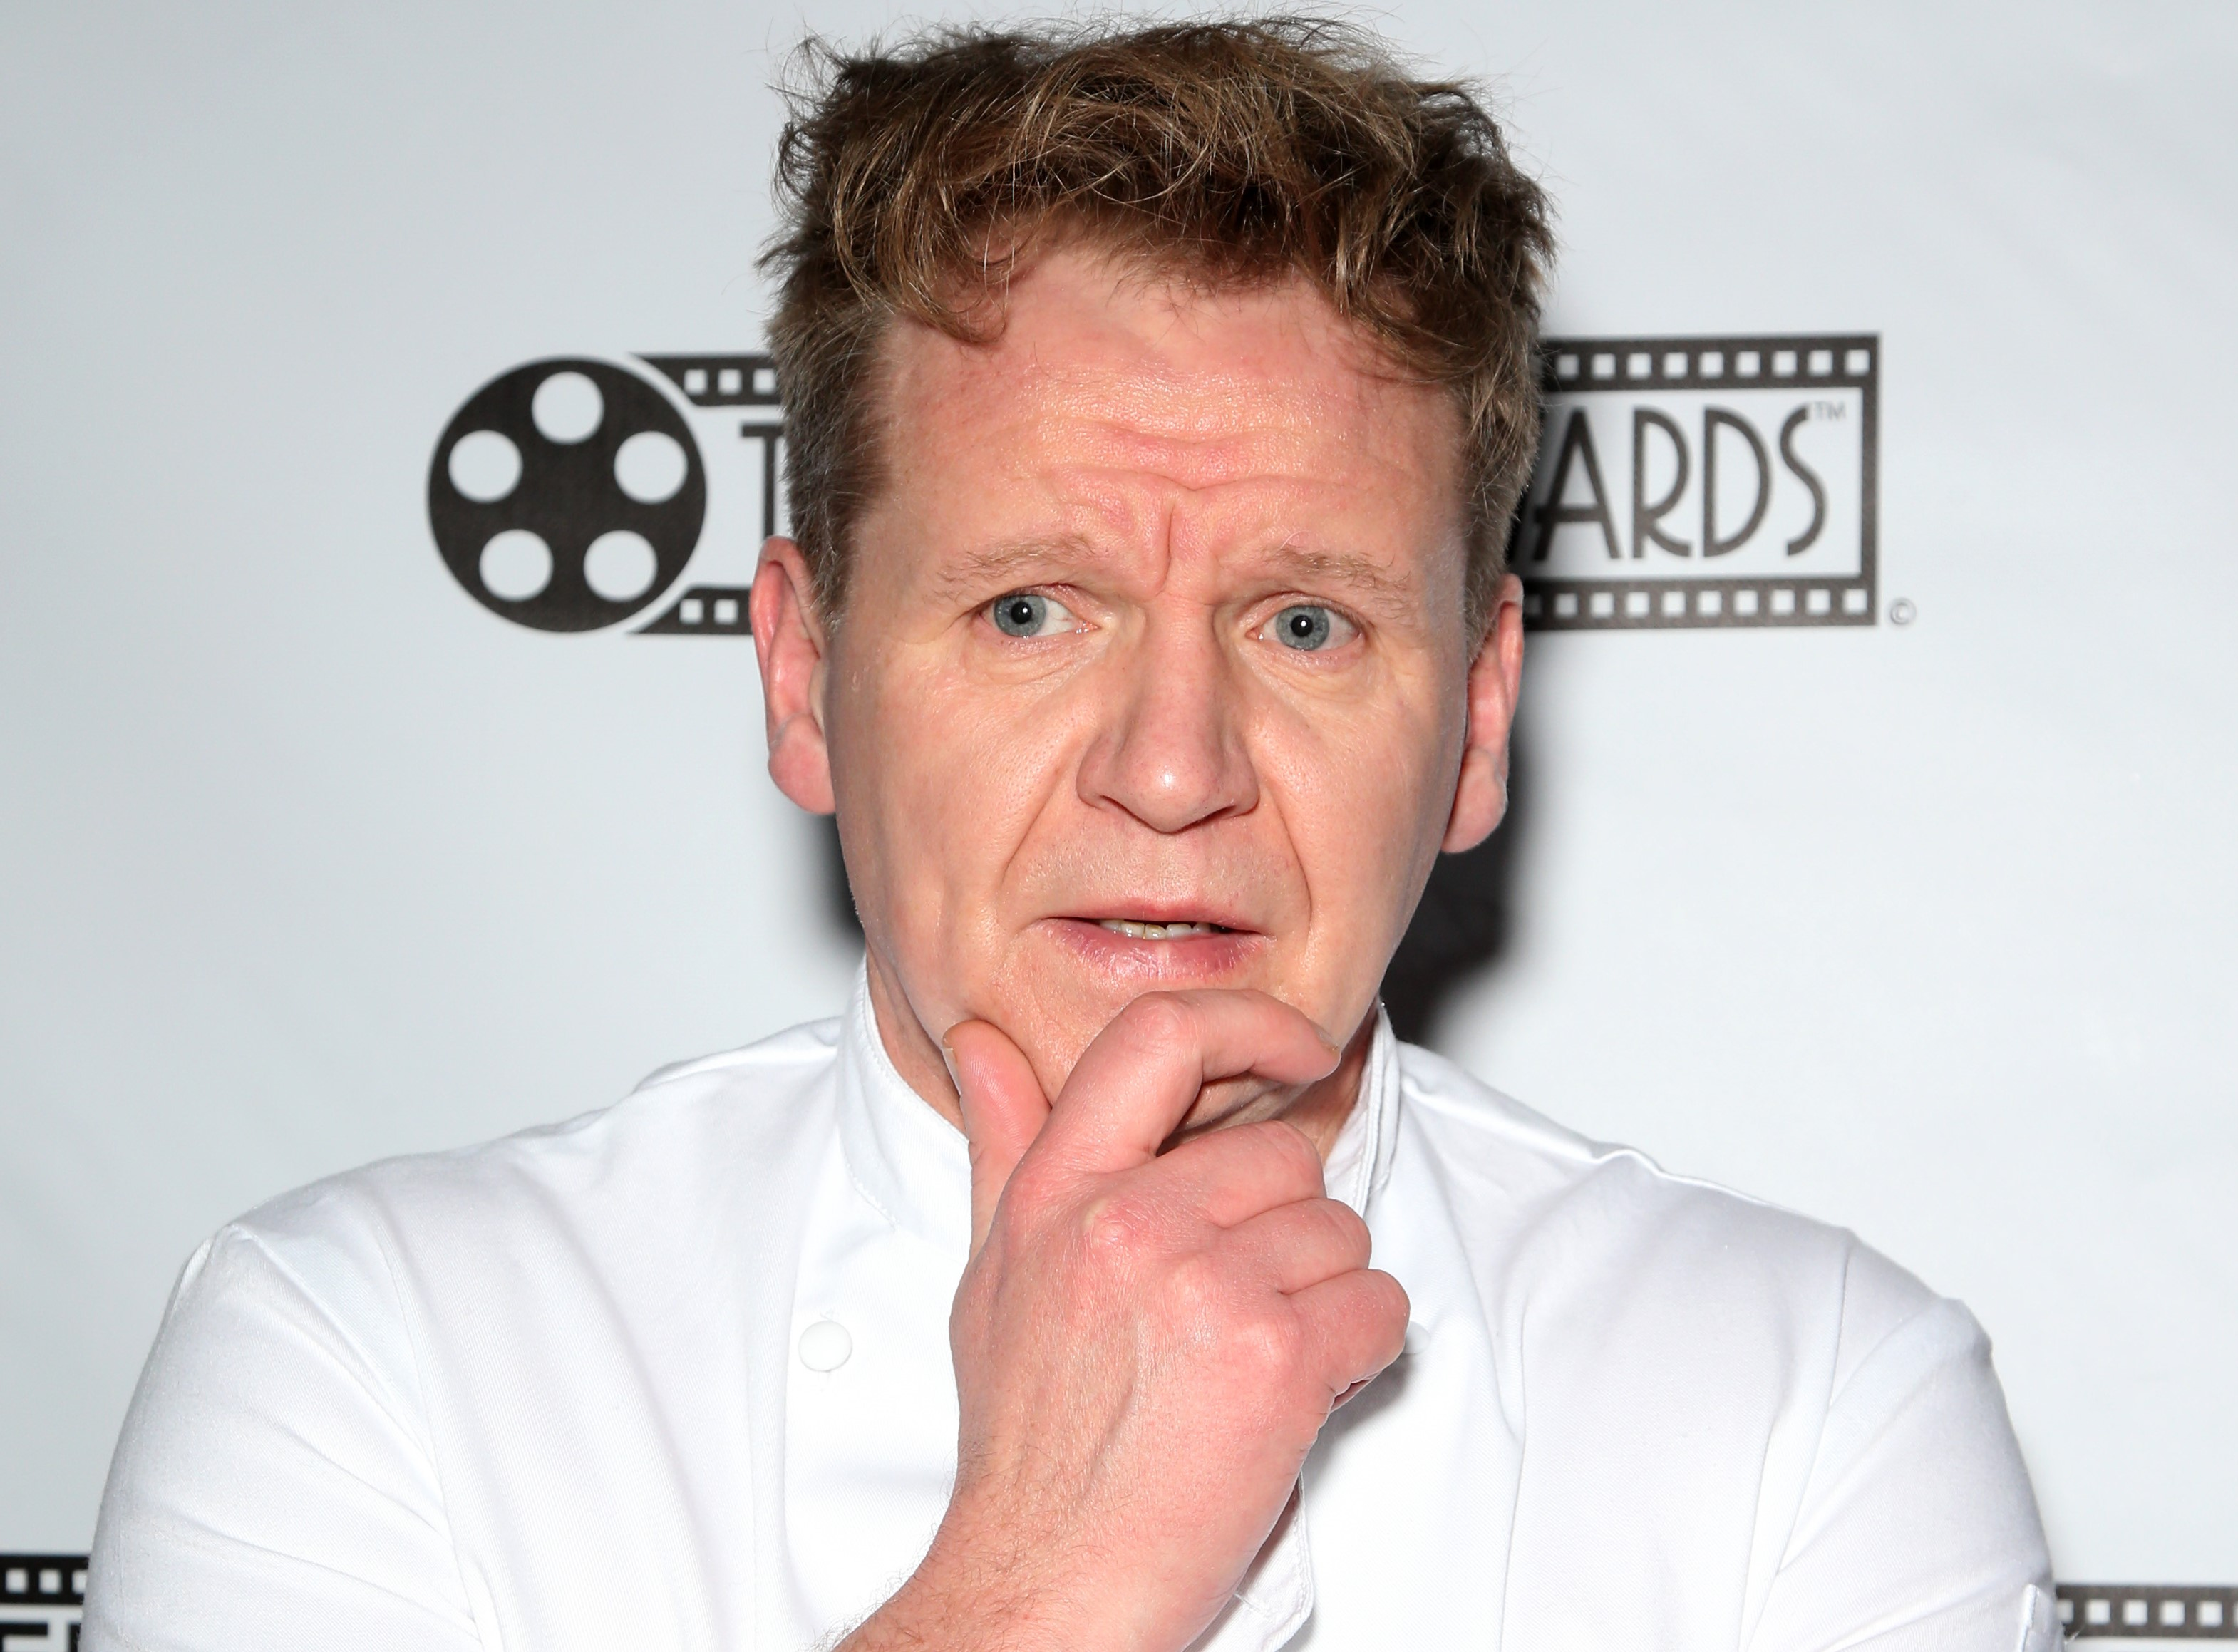 Gordon Ramsay is friends with Gigi Hadid (Photo by Gabe Ginsberg/Getty Images)